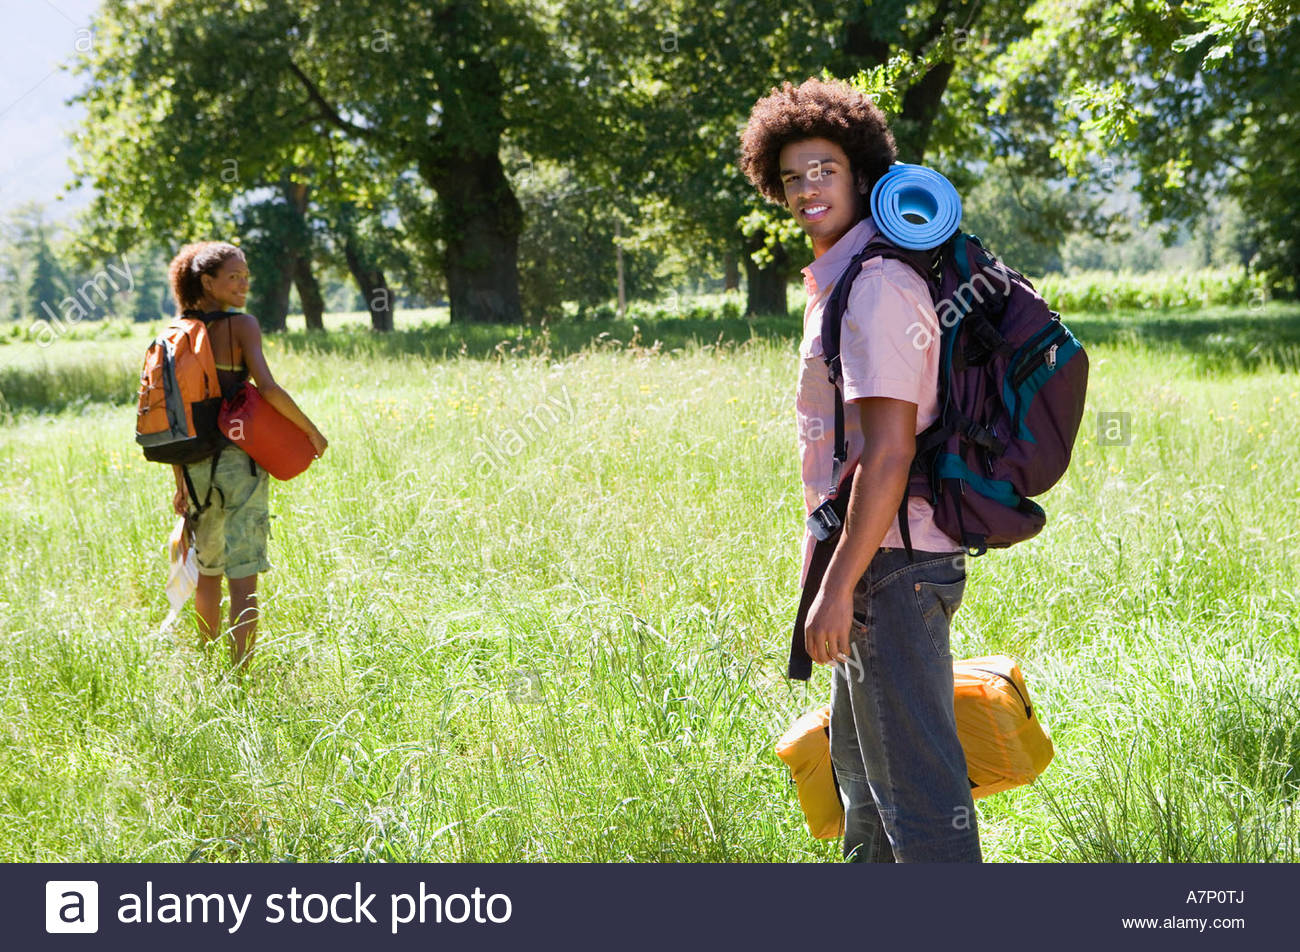 Young couple with rucksacks standing in woodland clearing departing on hiking trip side view smiling portrait - Stock Image